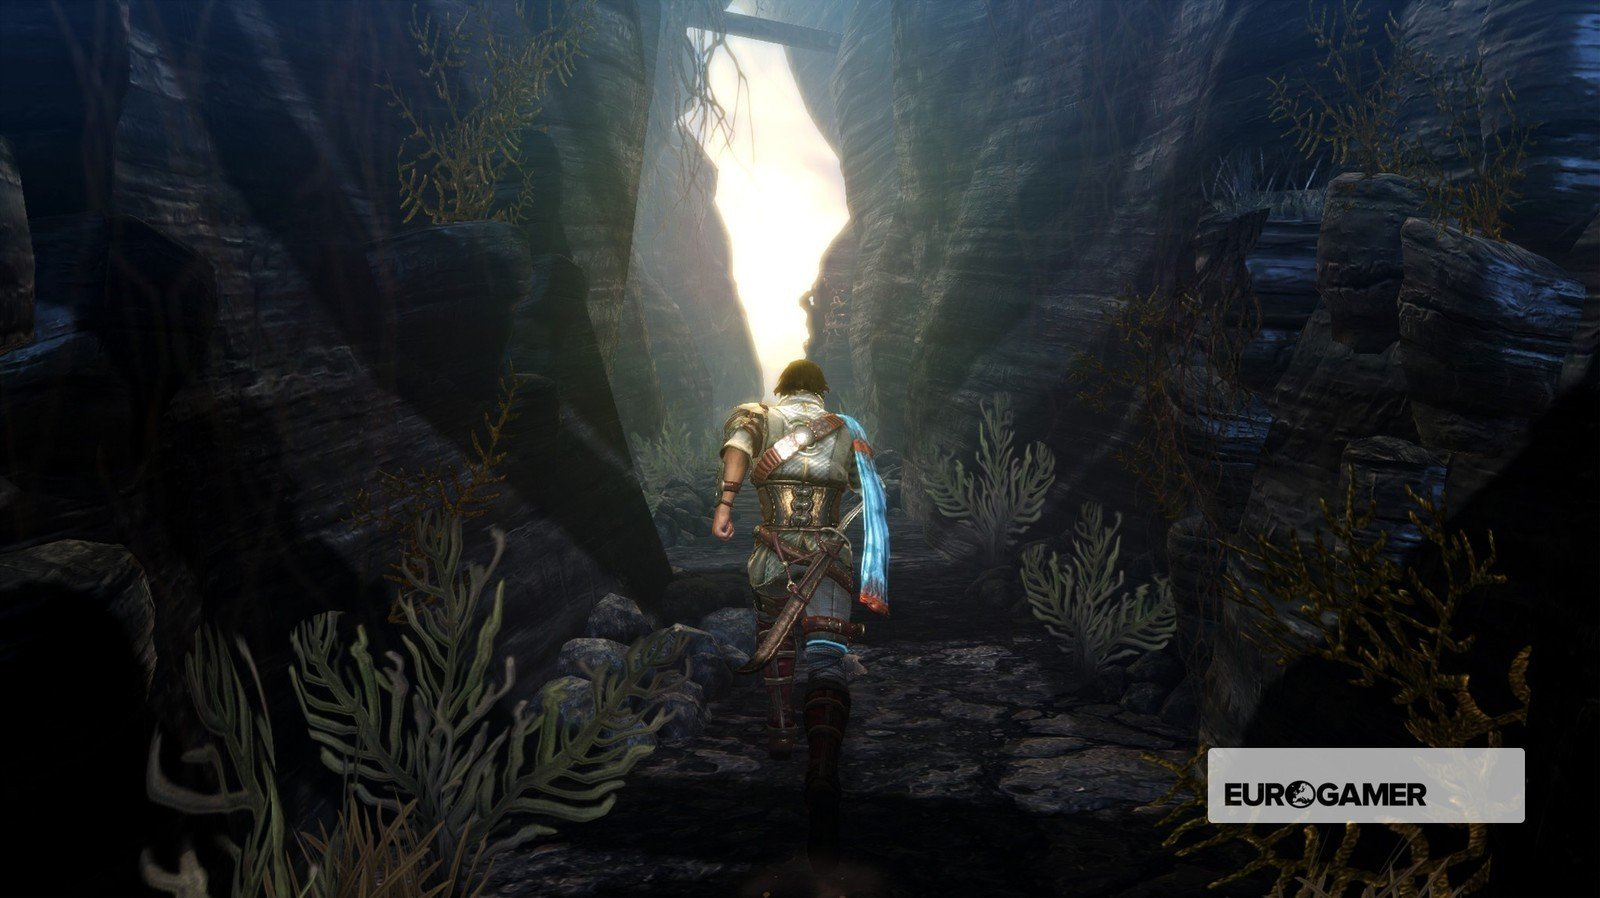 A screenshot from Stormlands. (Image courtesy of Eurogamer.)